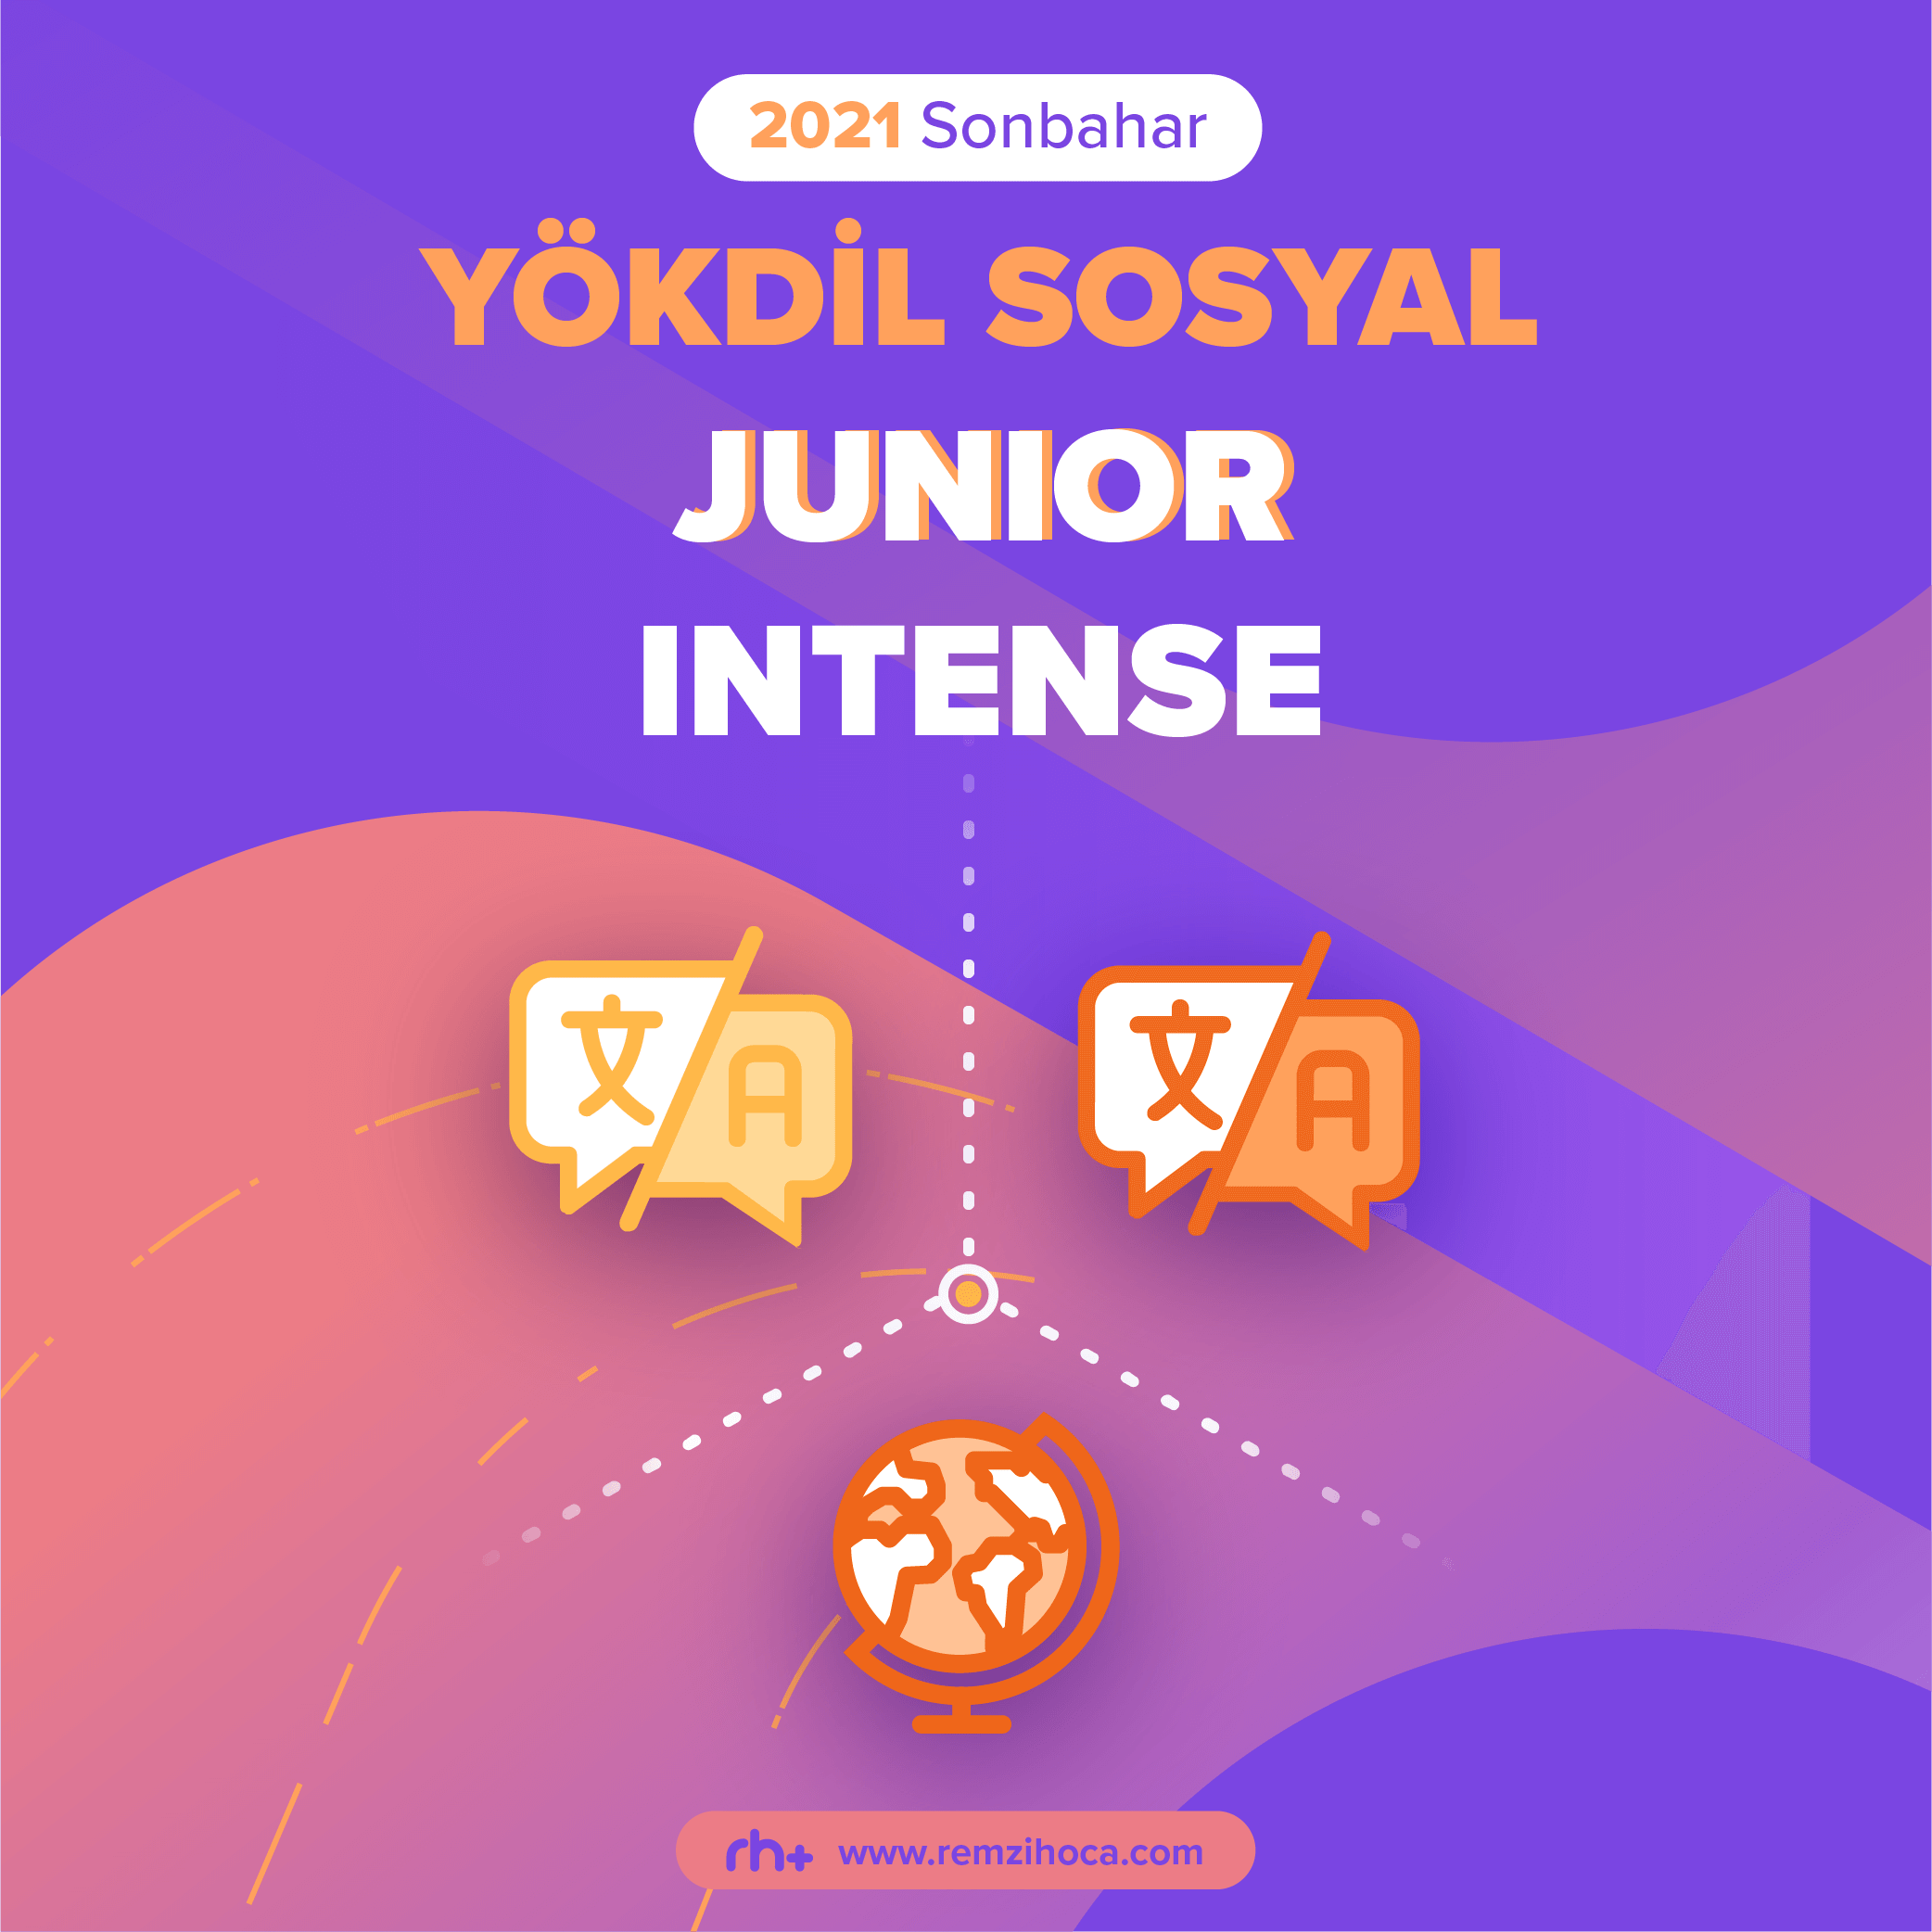 YÖKDİL Sosyal Junior Intense